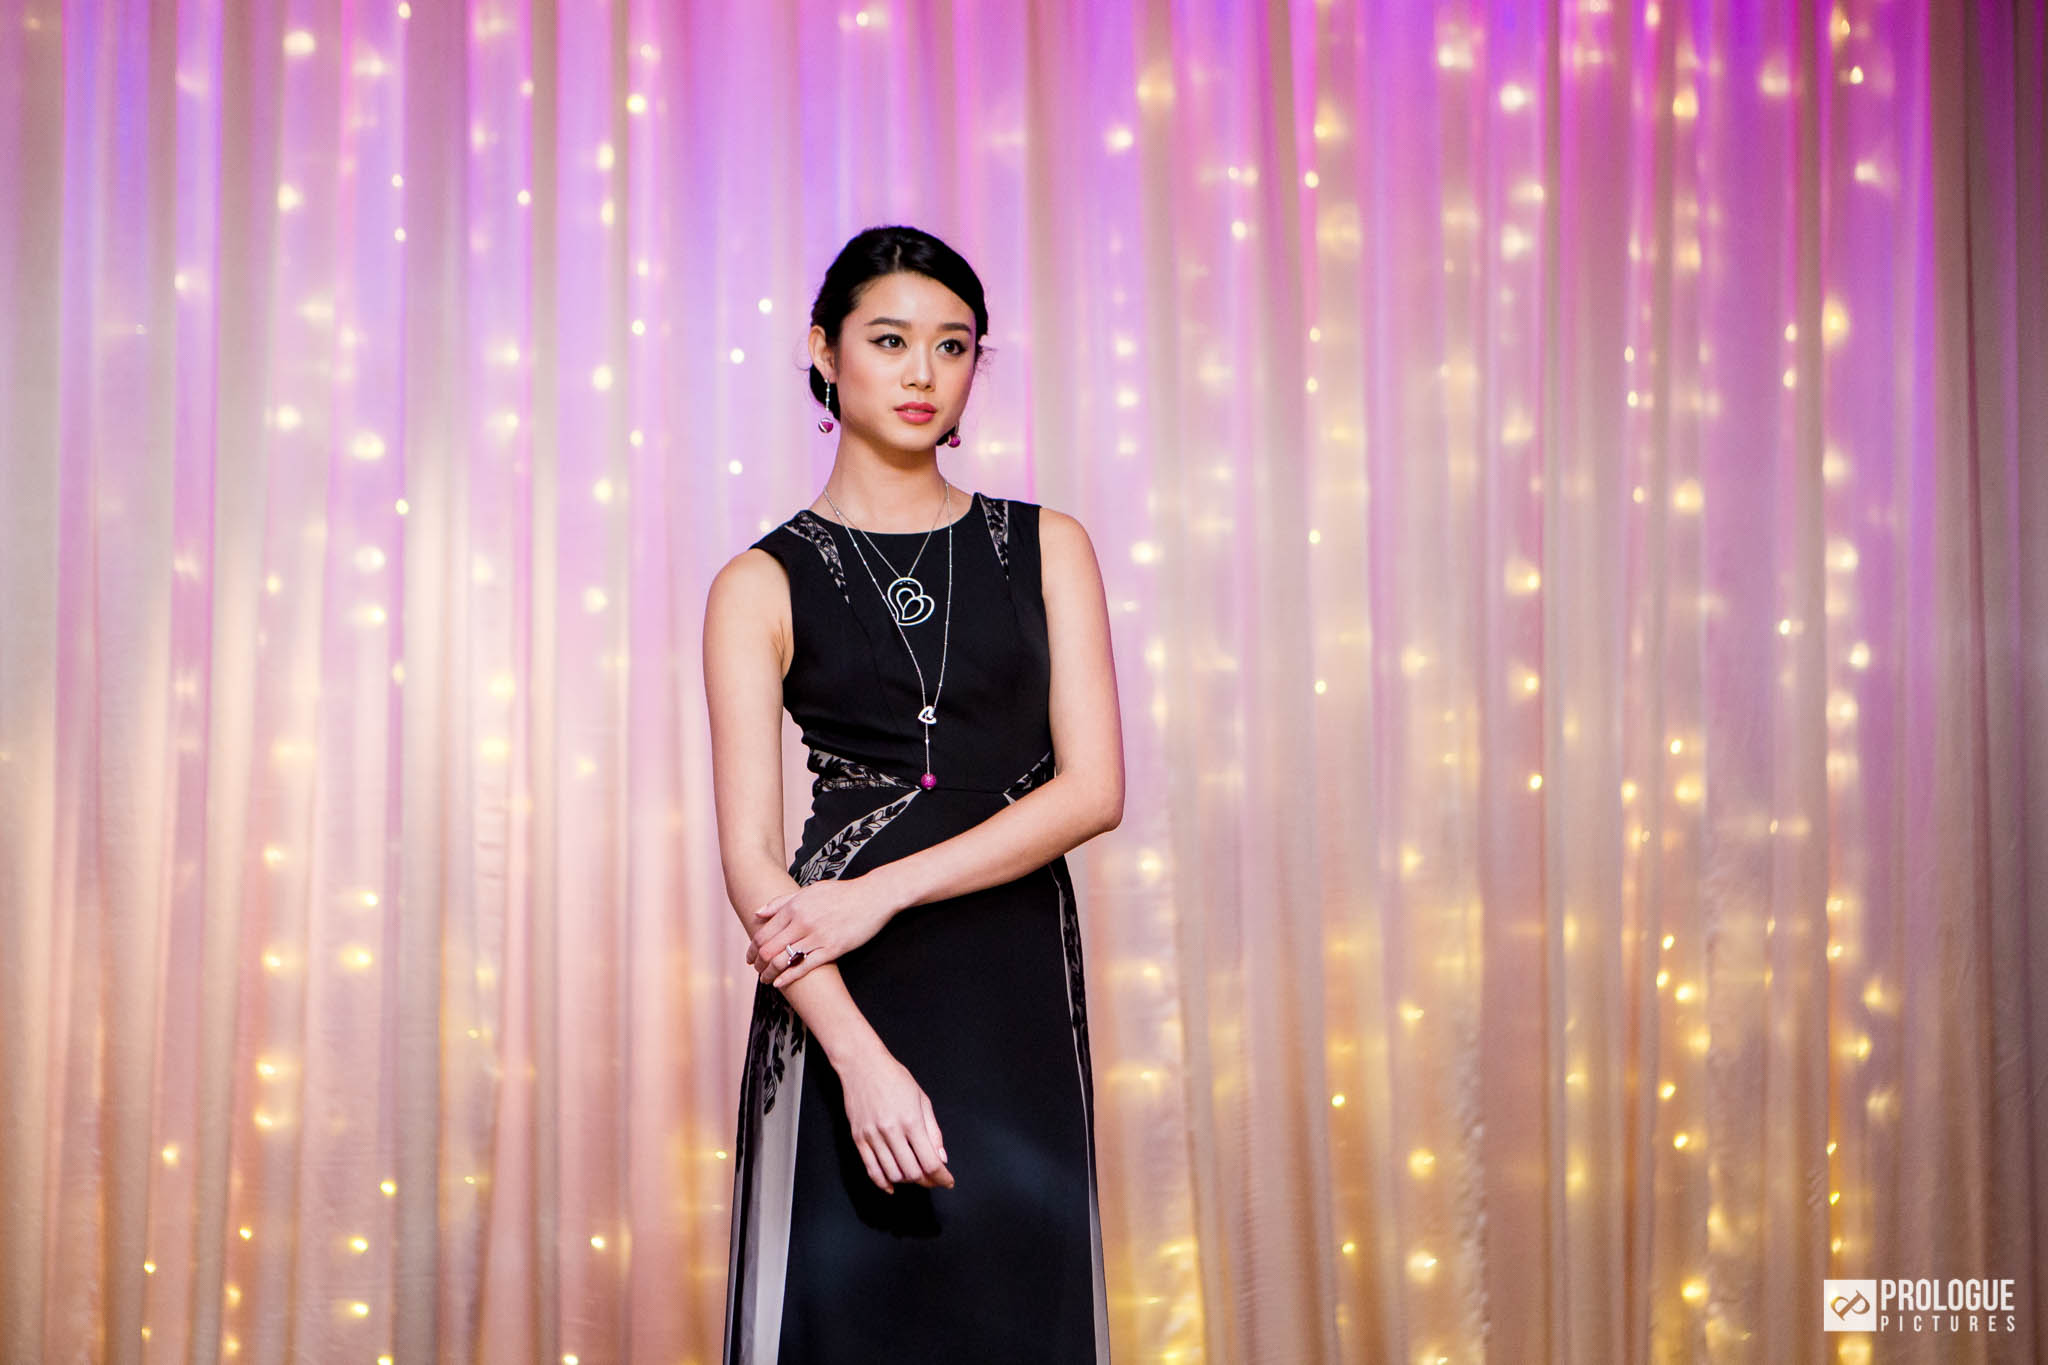 mouawad-125th-anniversary-event-photography-singapore-prologue-pictures-20